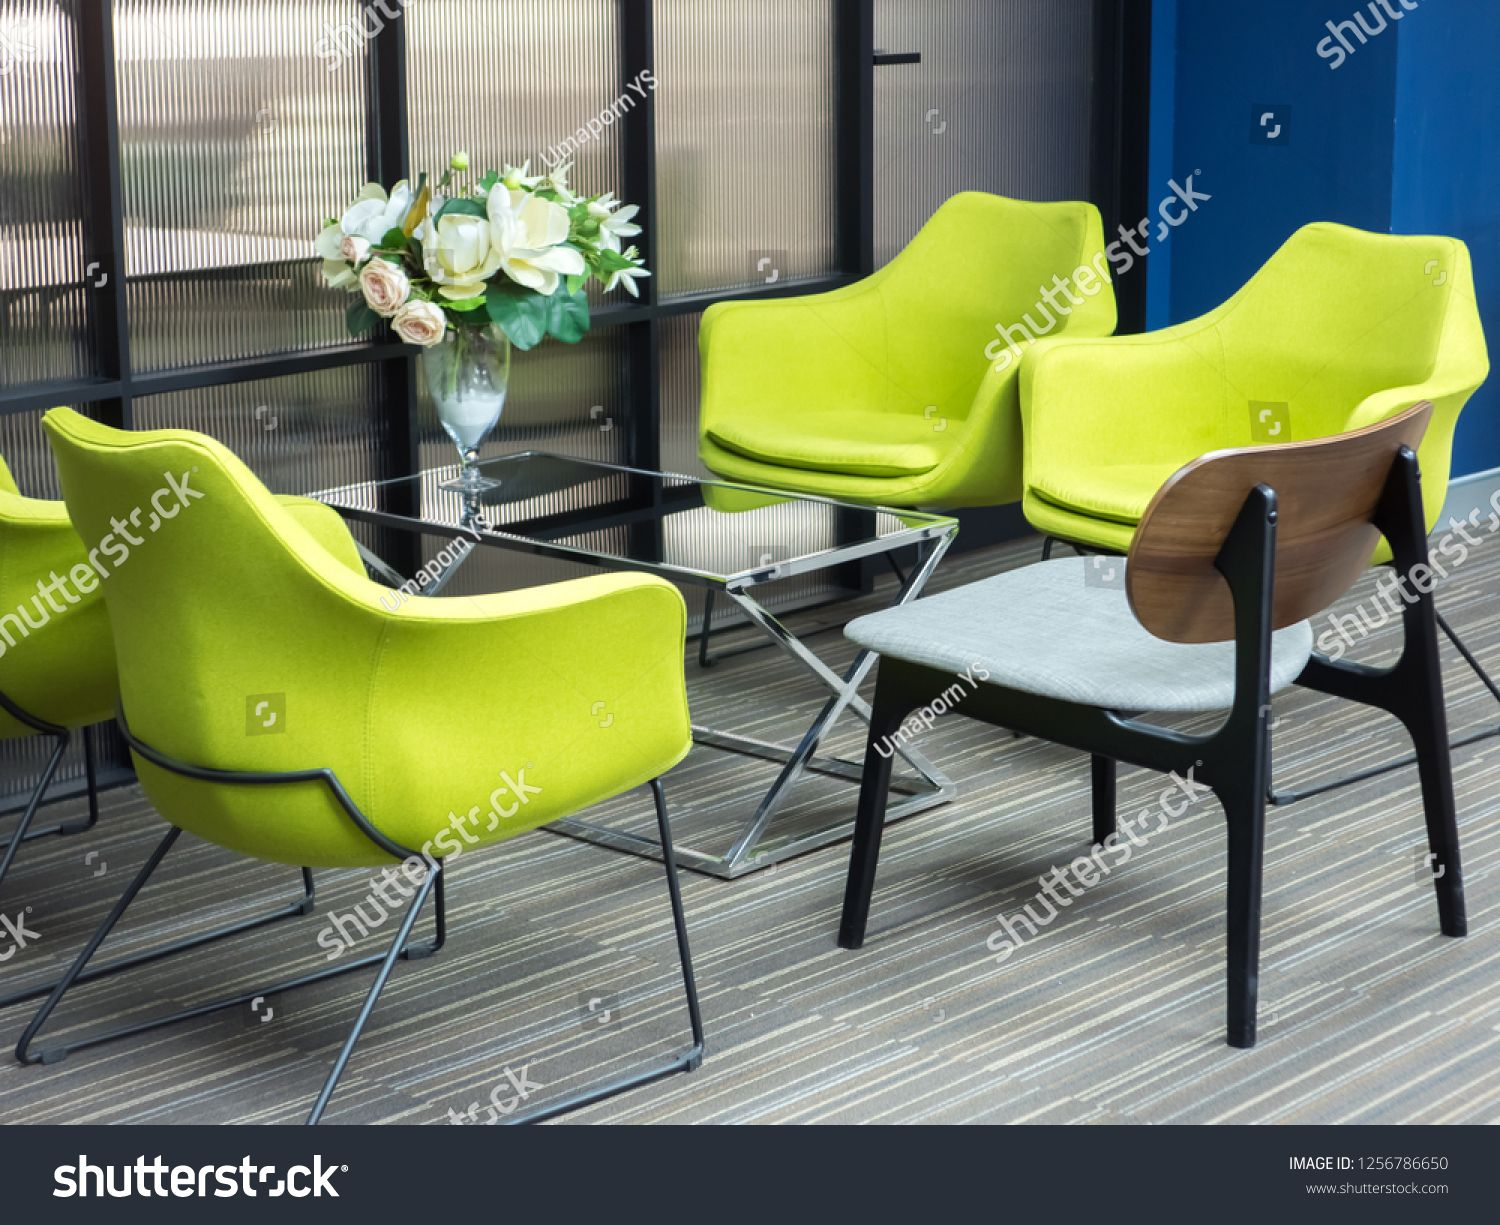 green chairs with glass table in office meeting room.glass#chairs